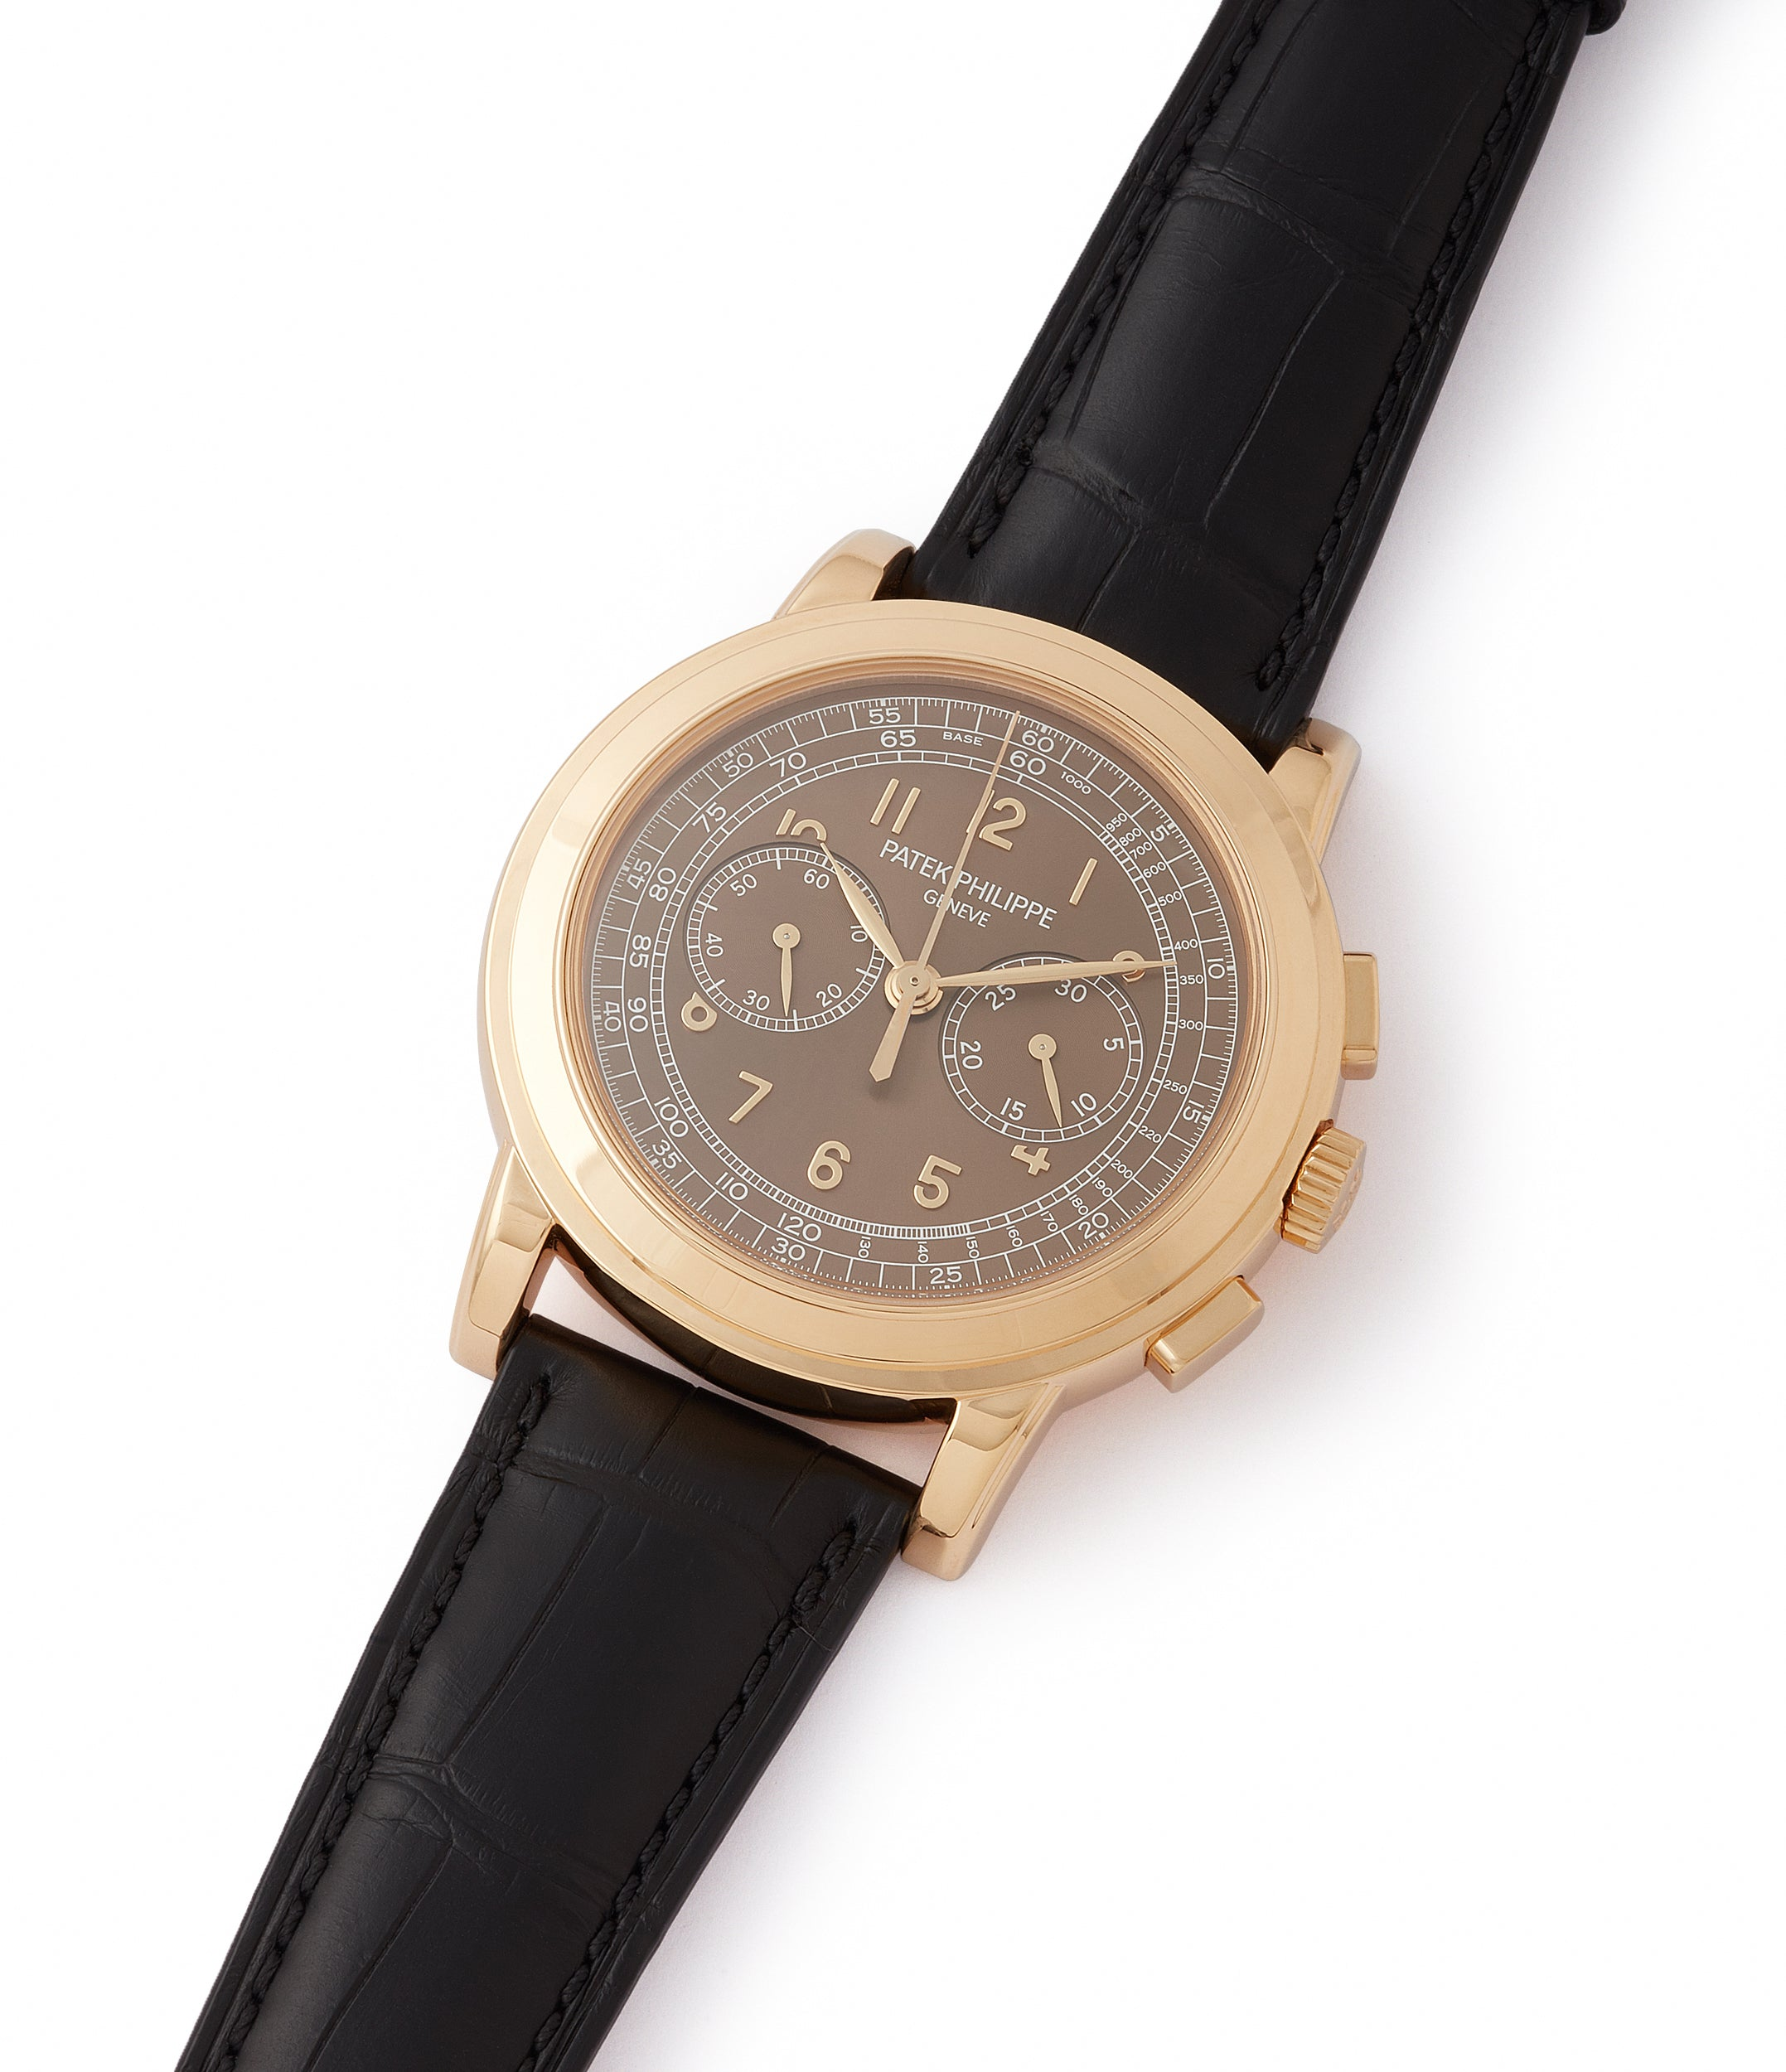 shop Patek Philippe 5070J-012 Saatchi Edition Chronograph yellow gold watch for sale online at A Collected Man London UK specialist of rare watches